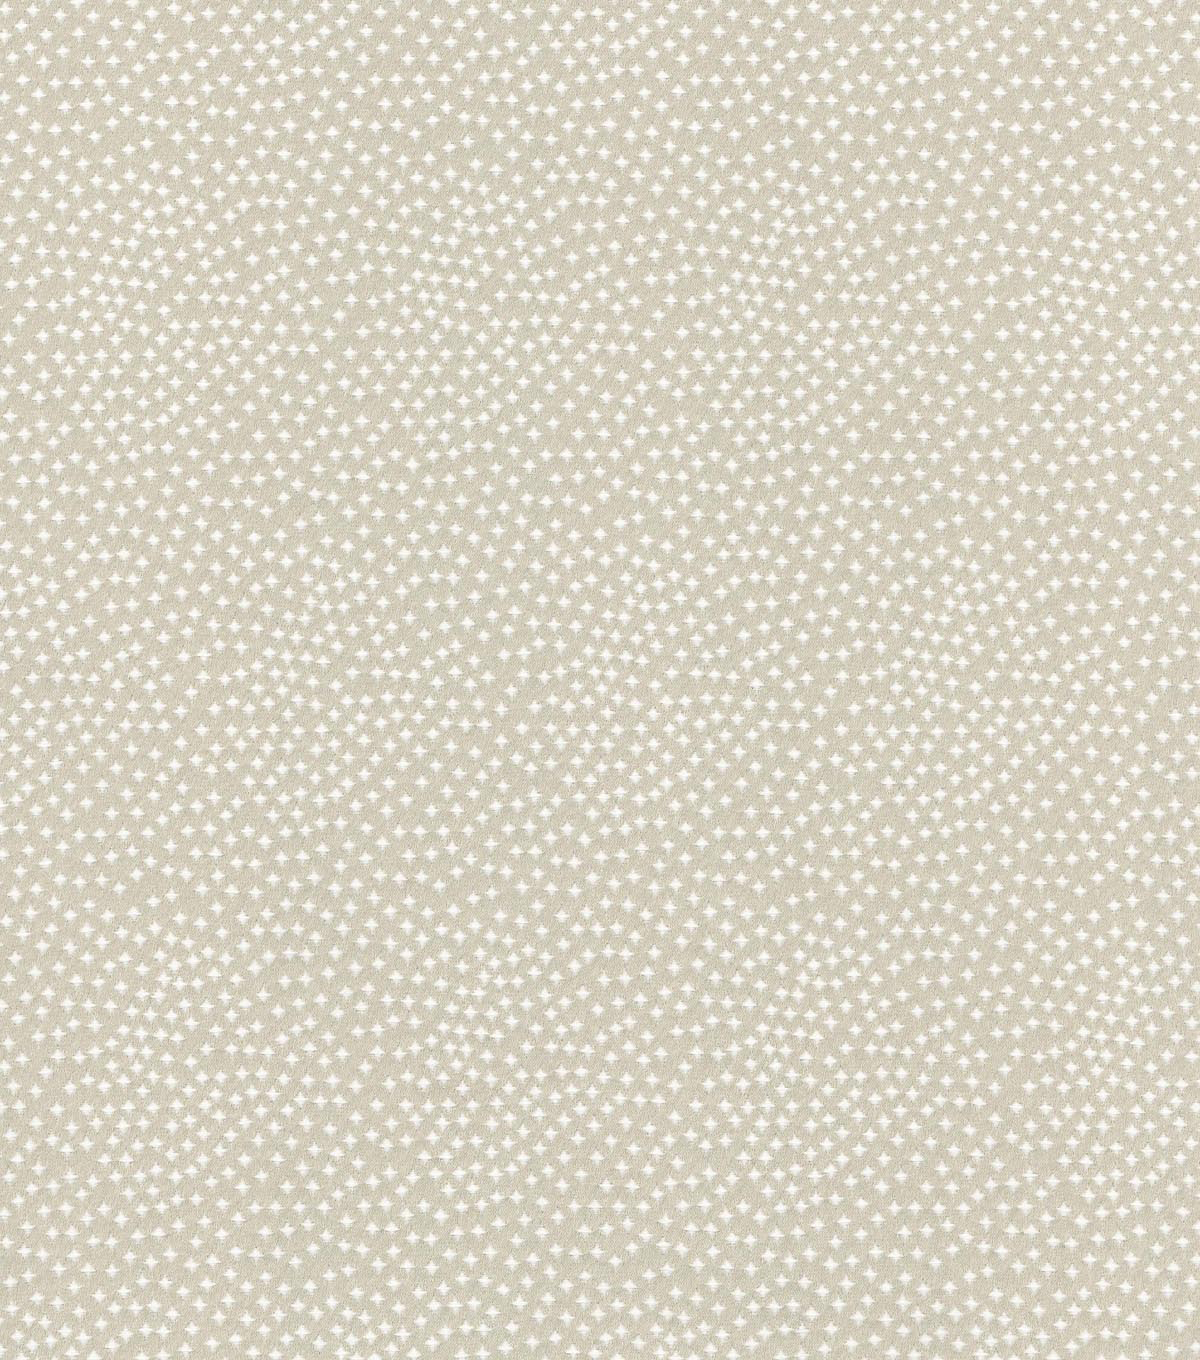 Home Decor 8\u0022x8\u0022 Swatch Fabric-Tracy Porter Following Stars Crystal